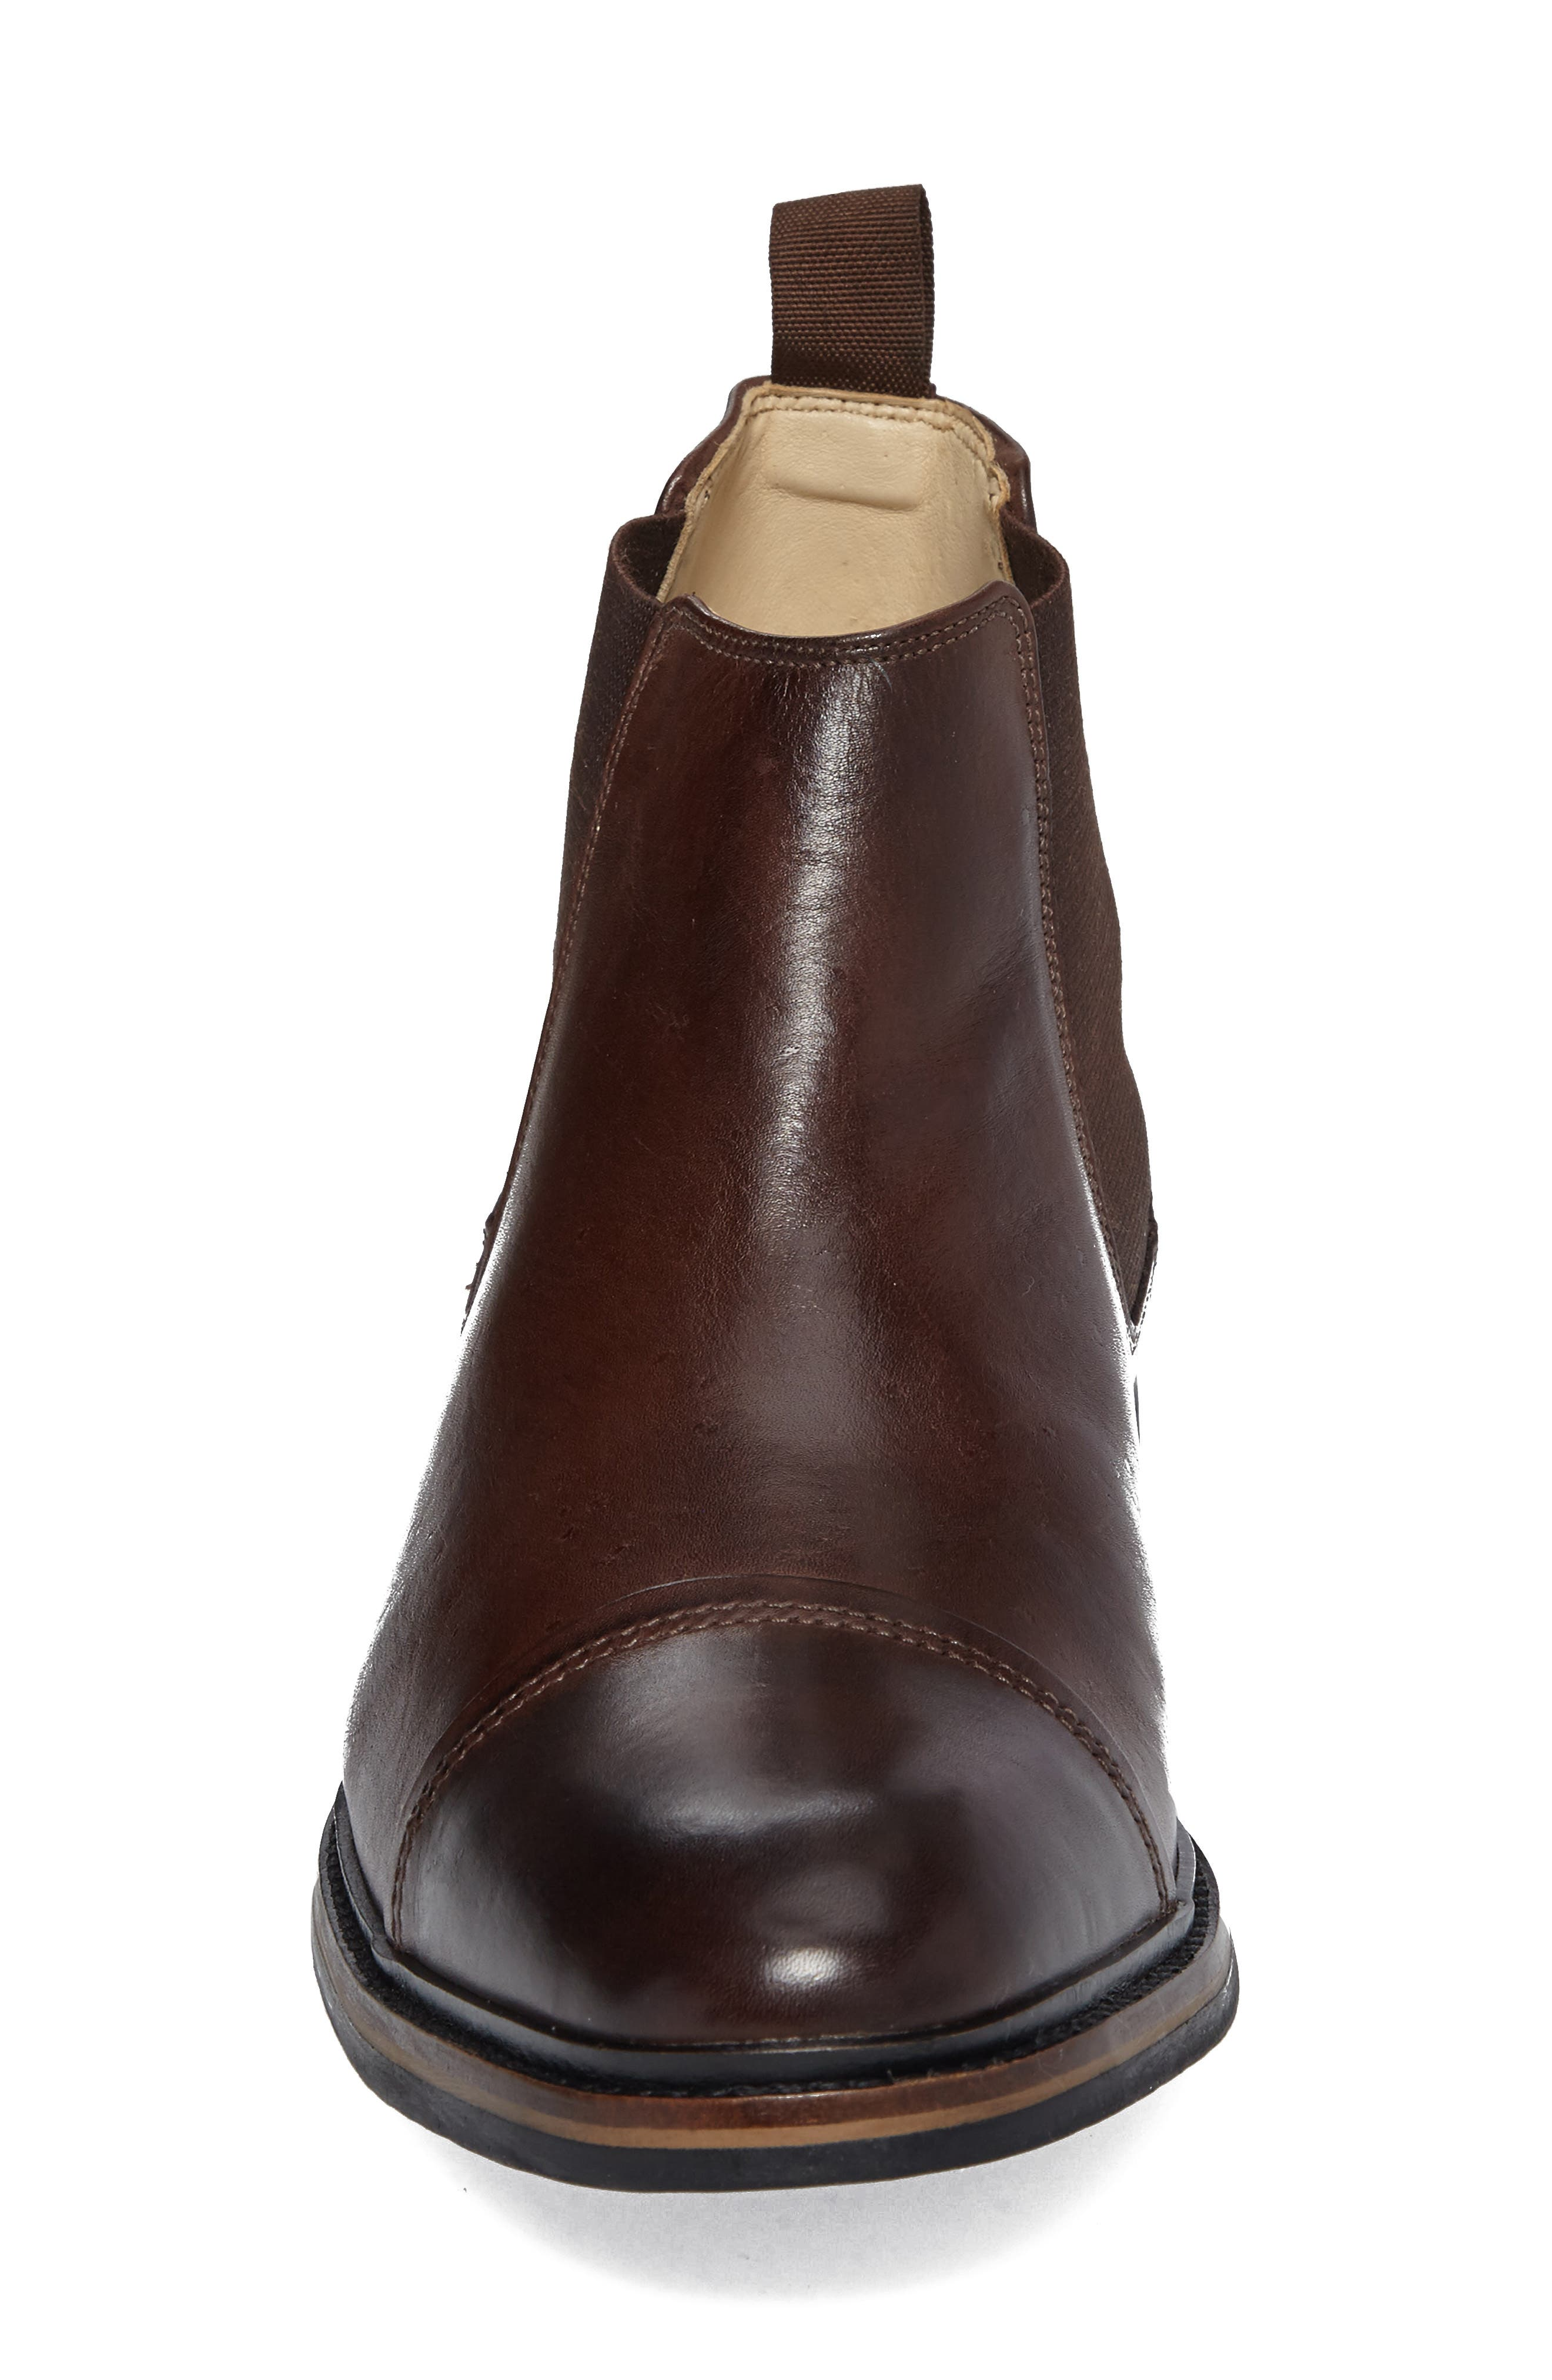 Floriano Chelsea Boot,                             Alternate thumbnail 4, color,                             200